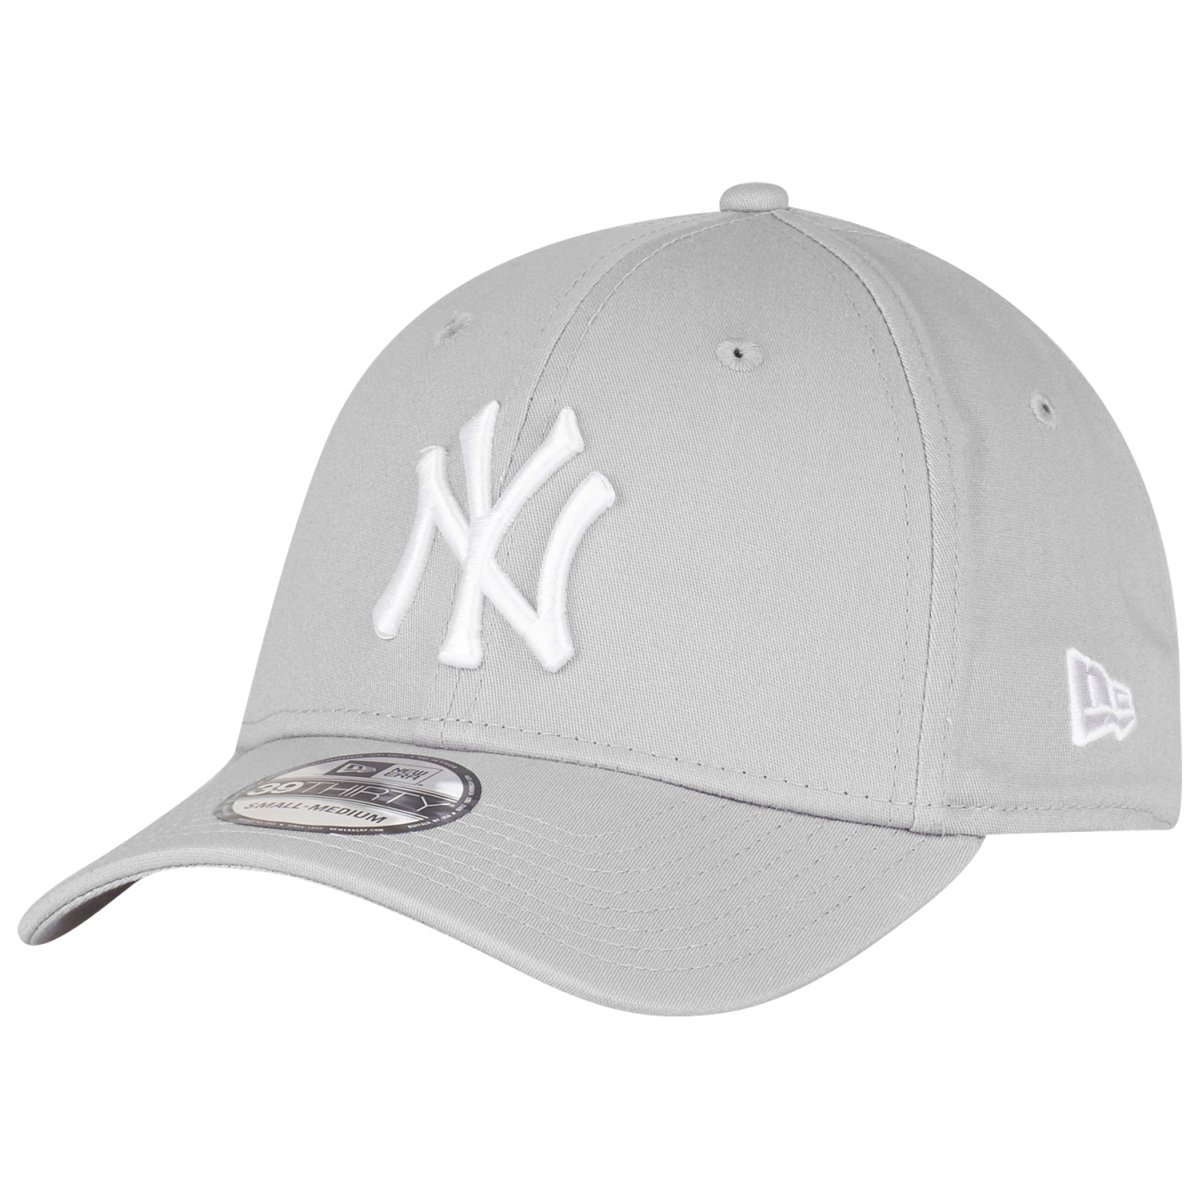 New Era Herren Baseball Cap Mü tze M/LB Basic NY Yankees 39Thirty Stretch Back, 102982